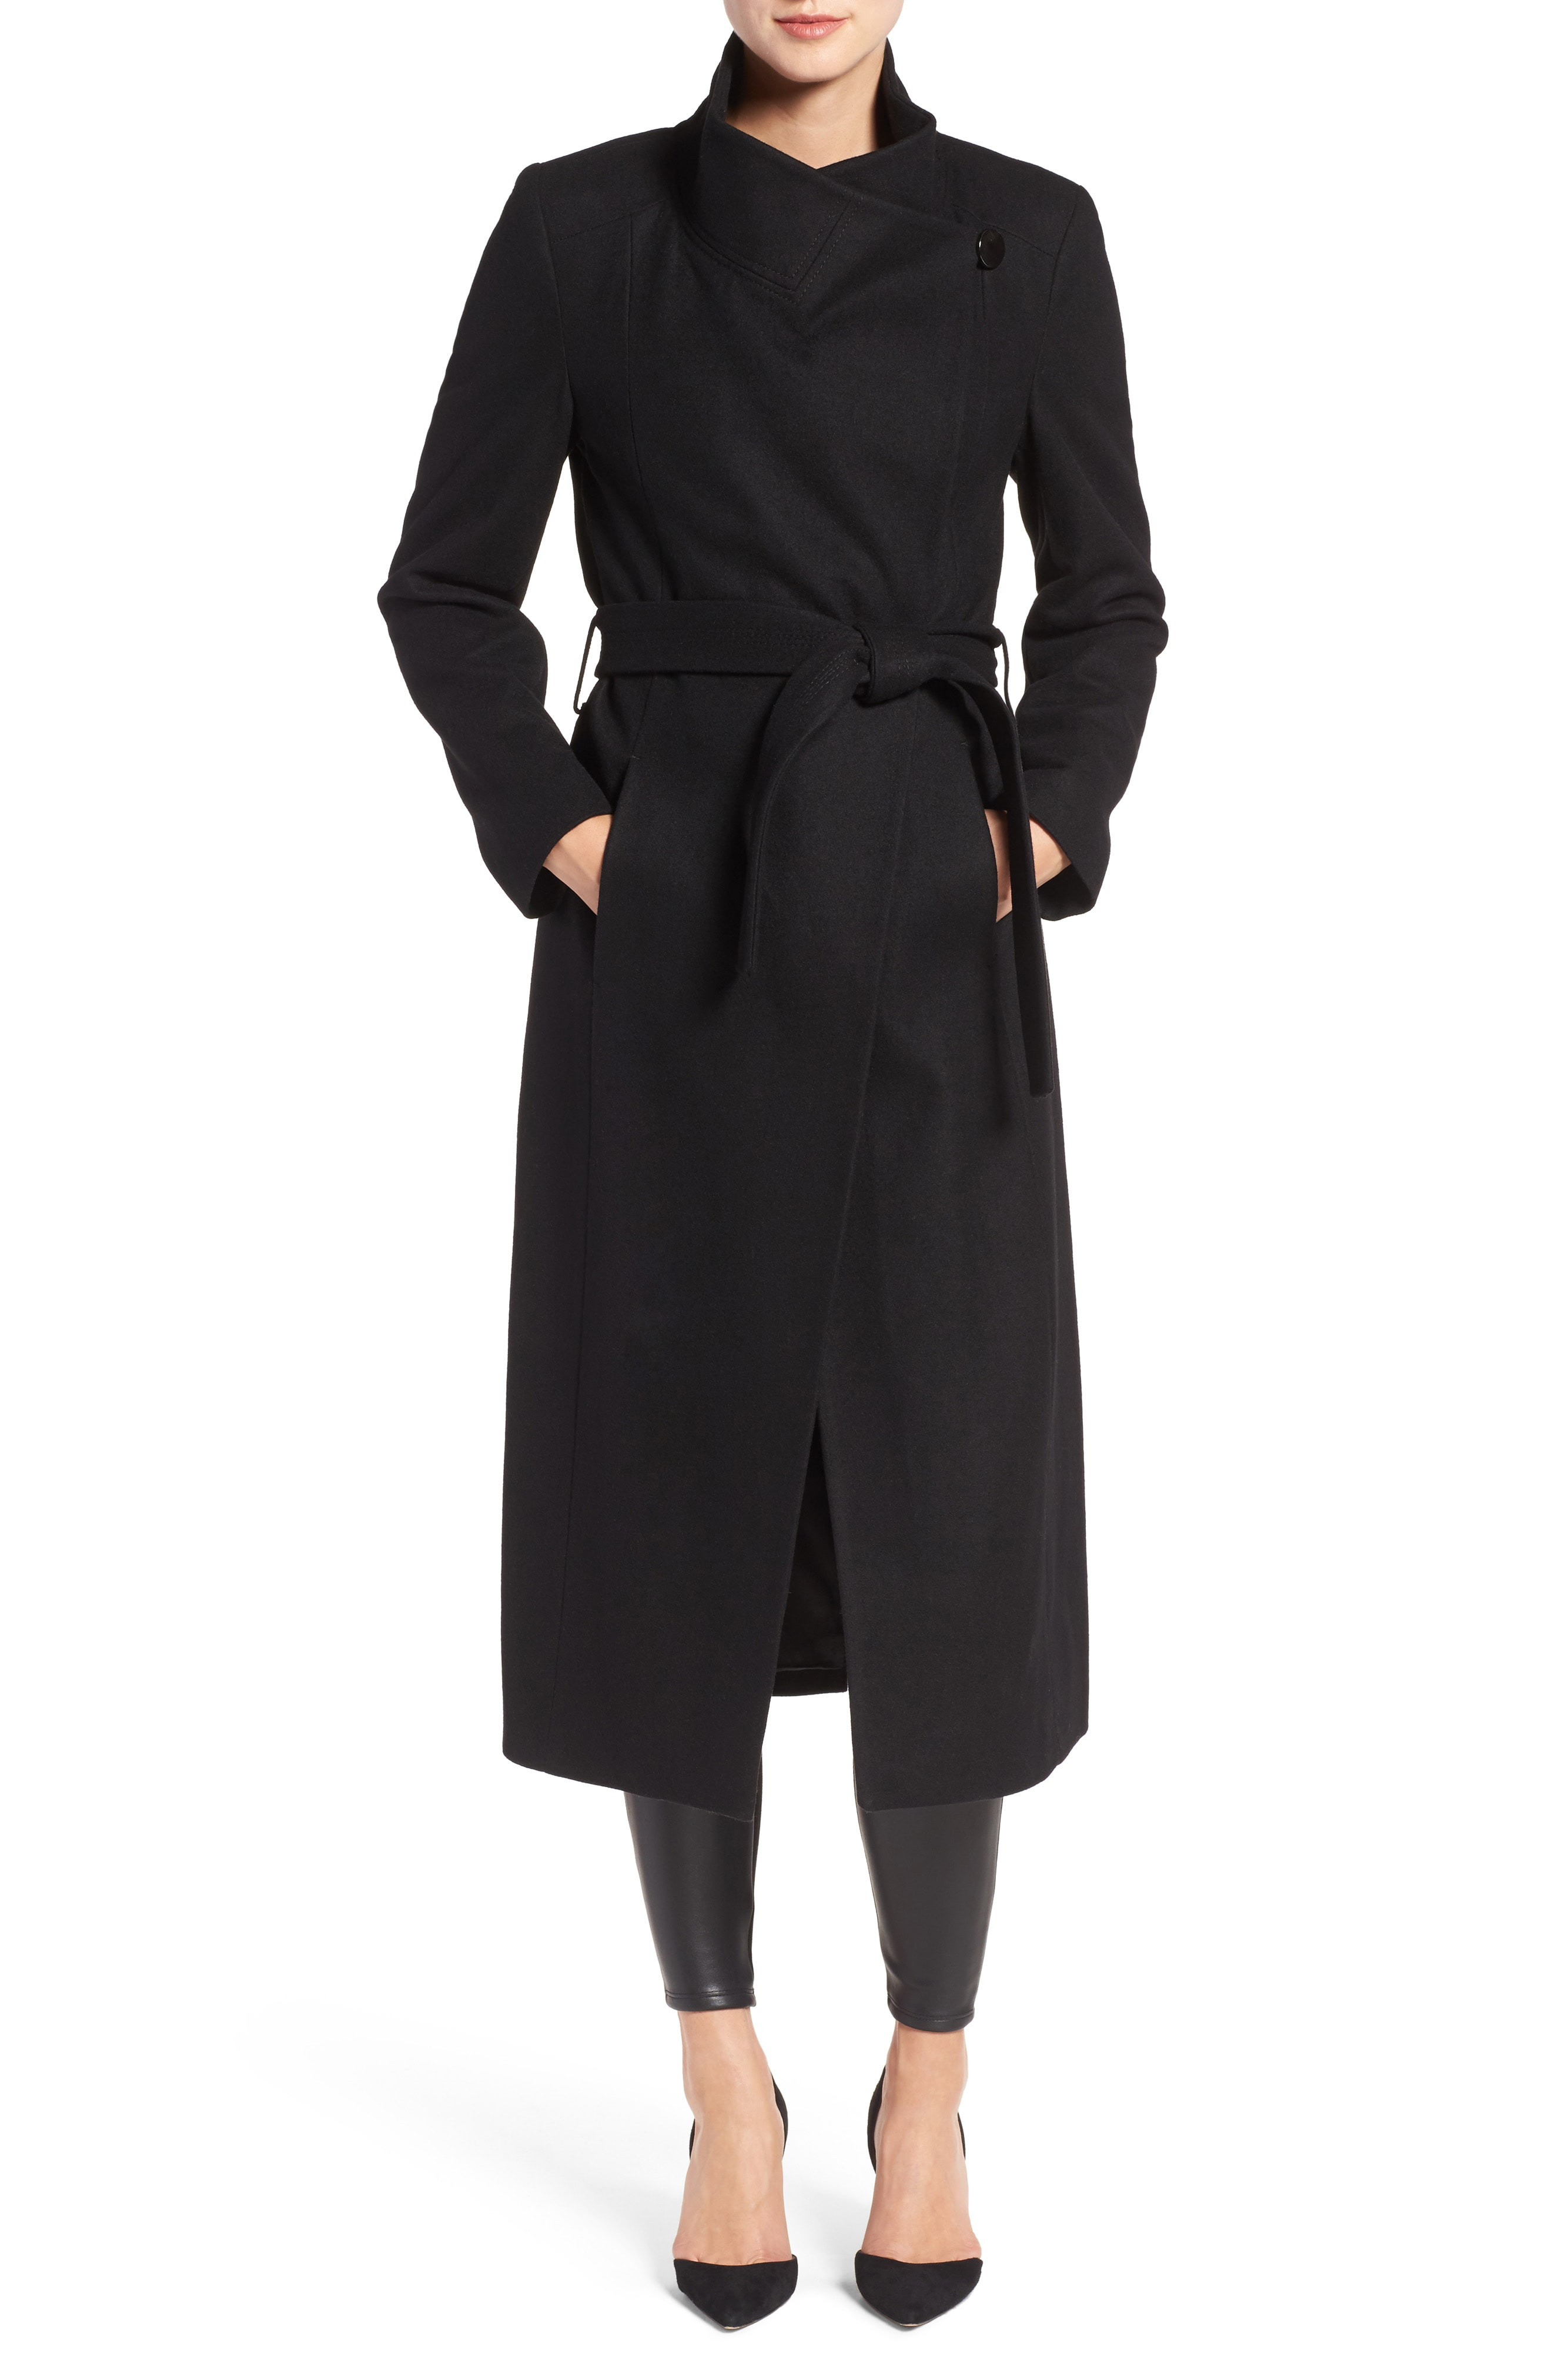 Women's Long Coats & Jackets | Nordstrom